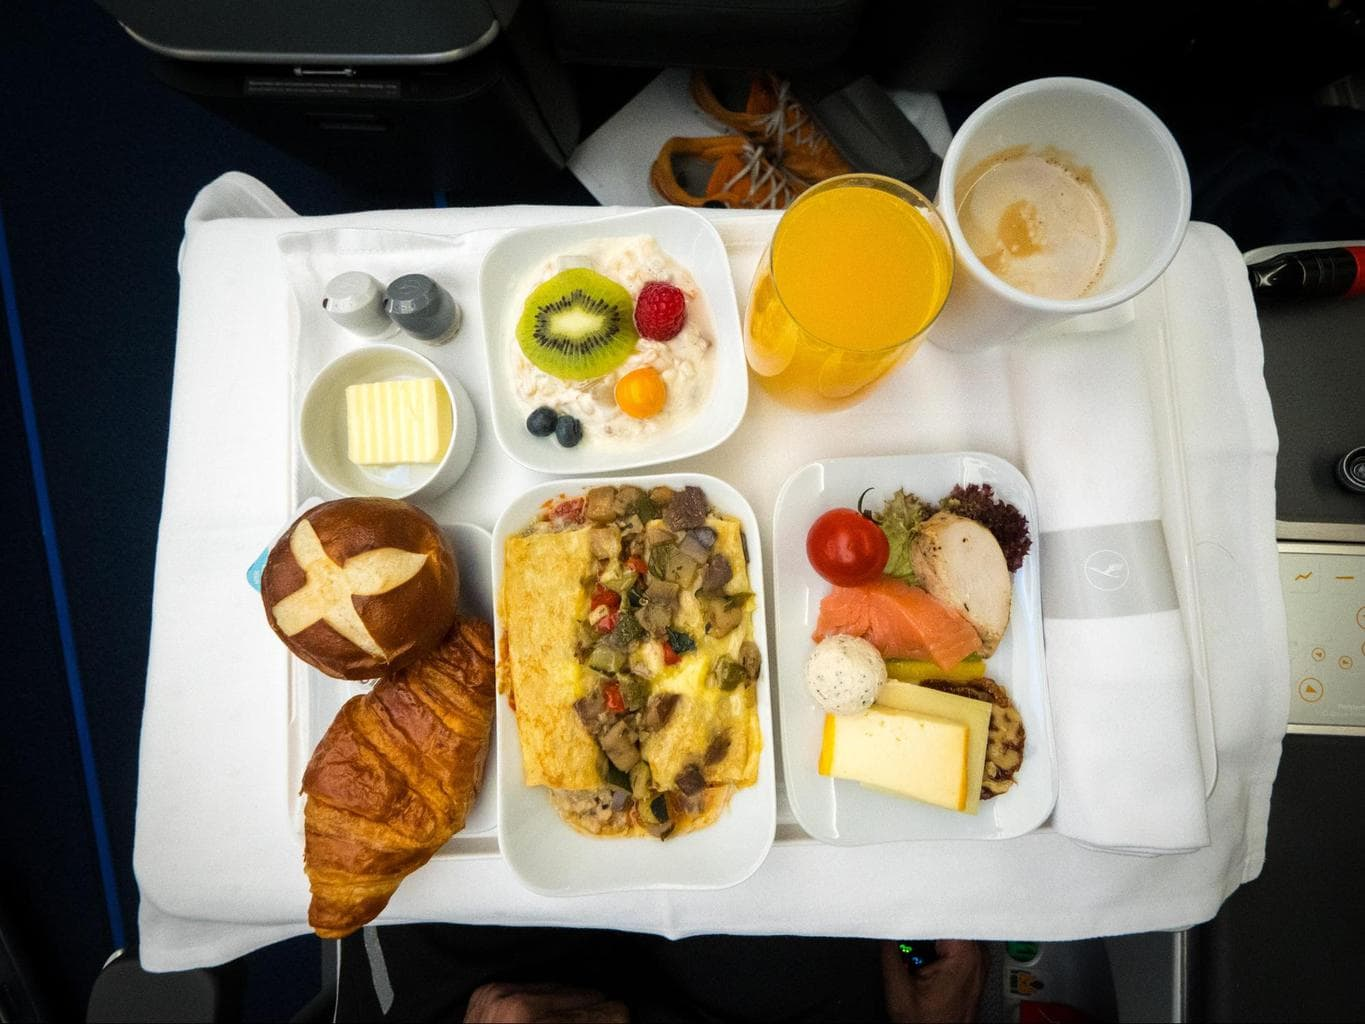 Lufthansa Business Class food - My breakfast